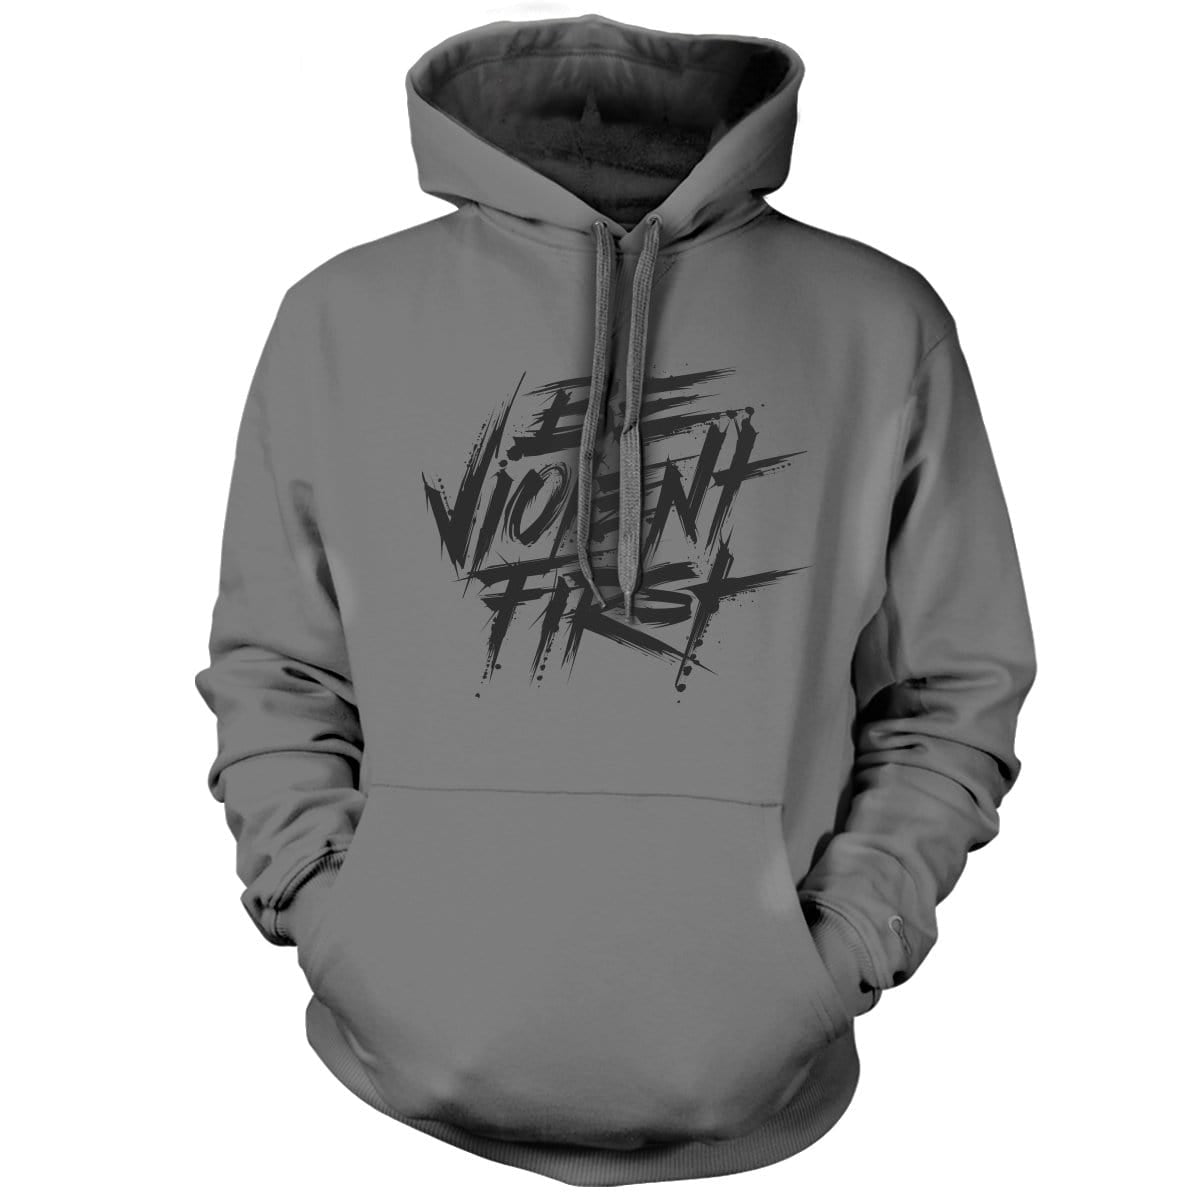 Be Violent First Hoodie - Grey/Black - Hoodies - Pipe Hitters Union